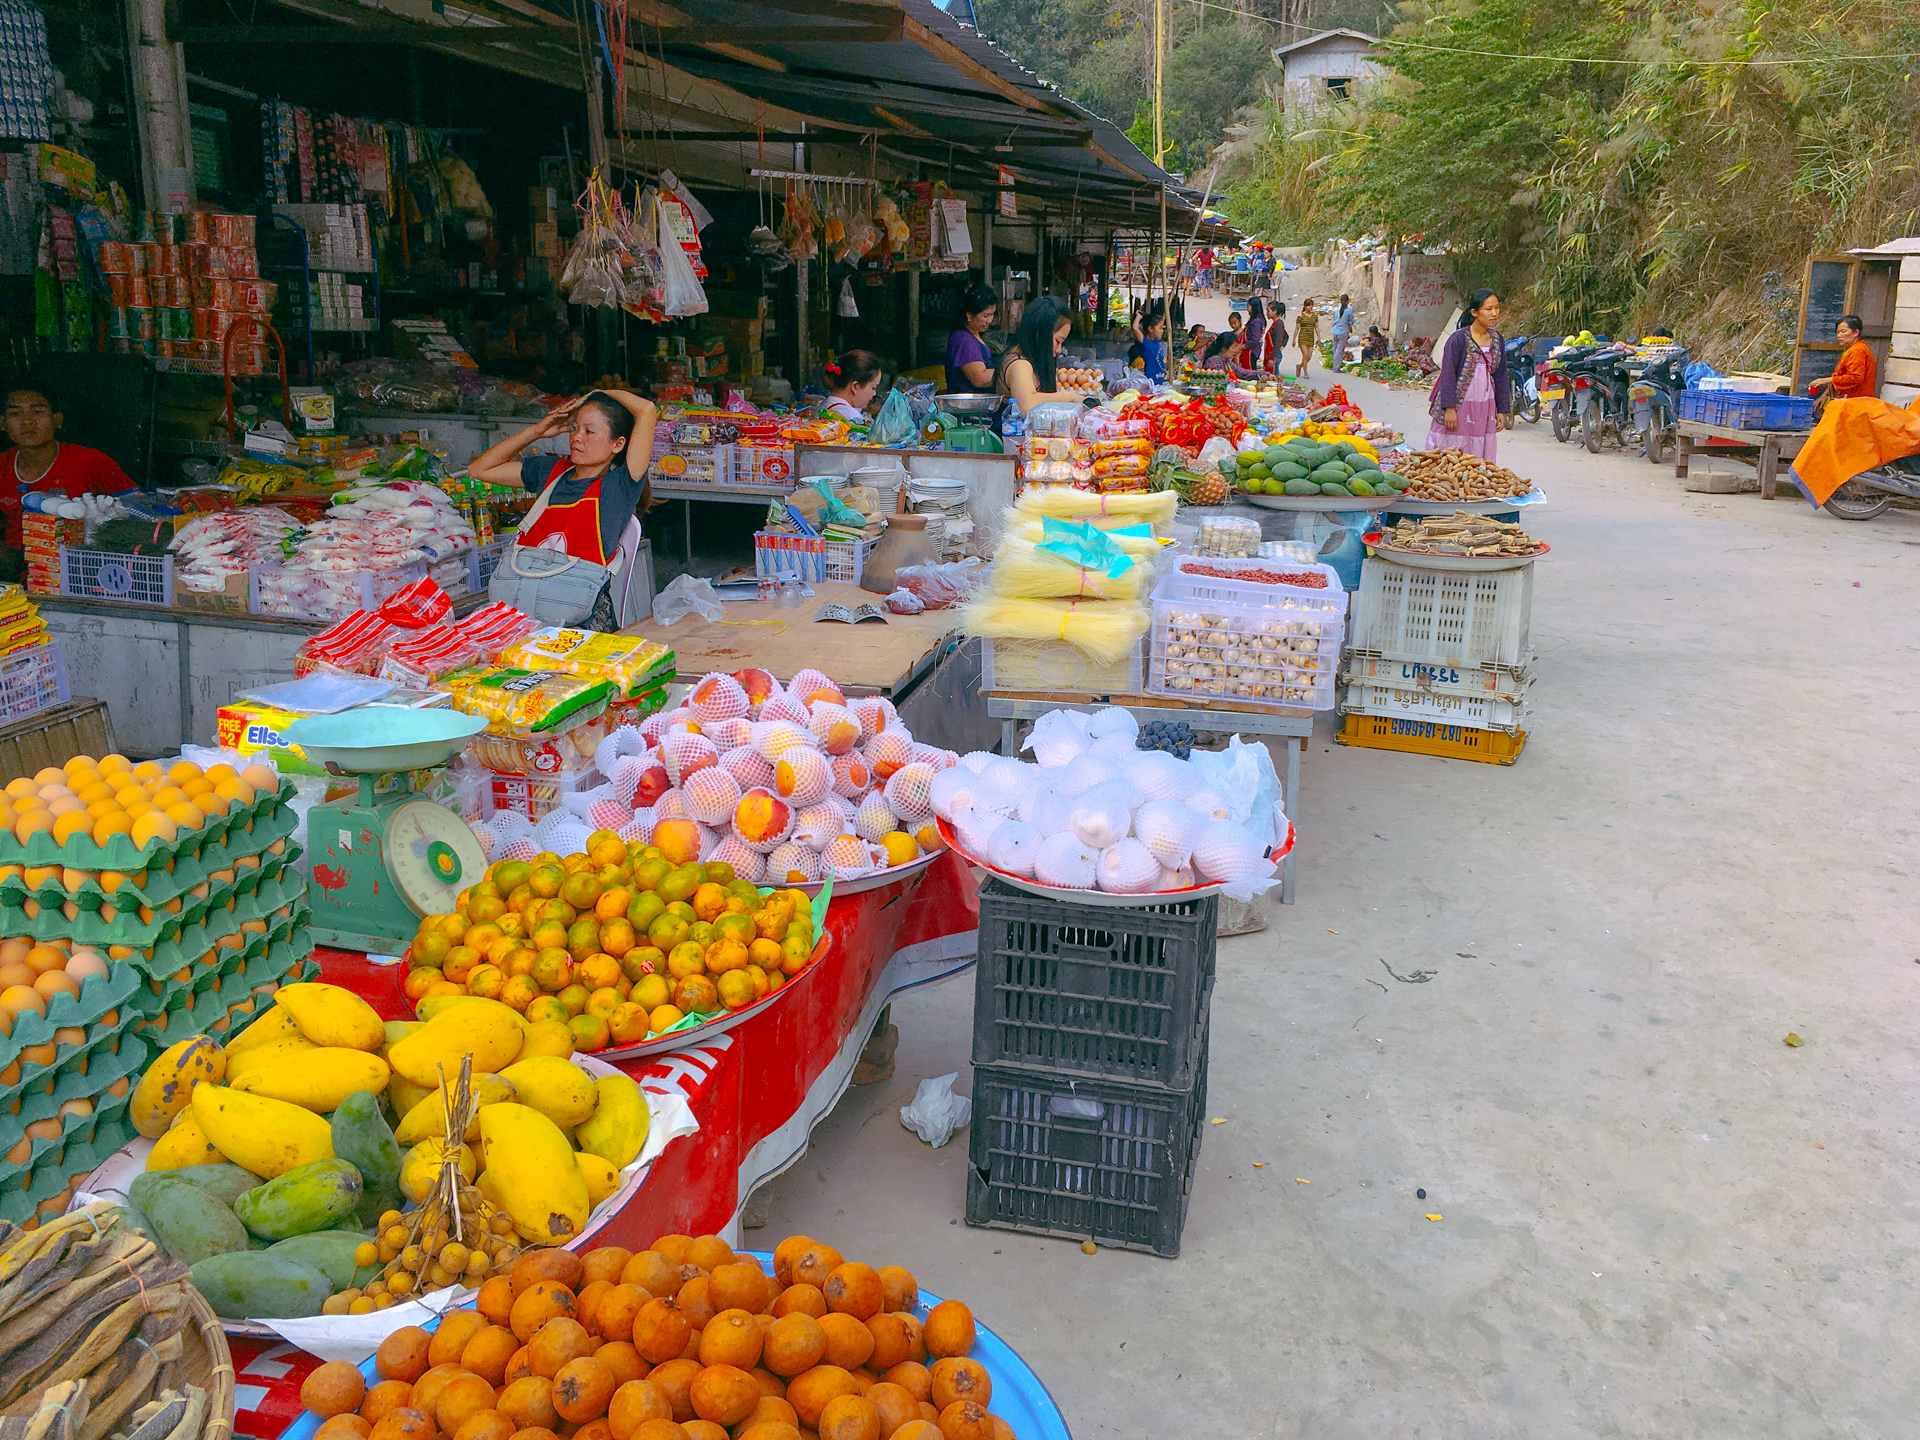 Fruit market in Pekbang